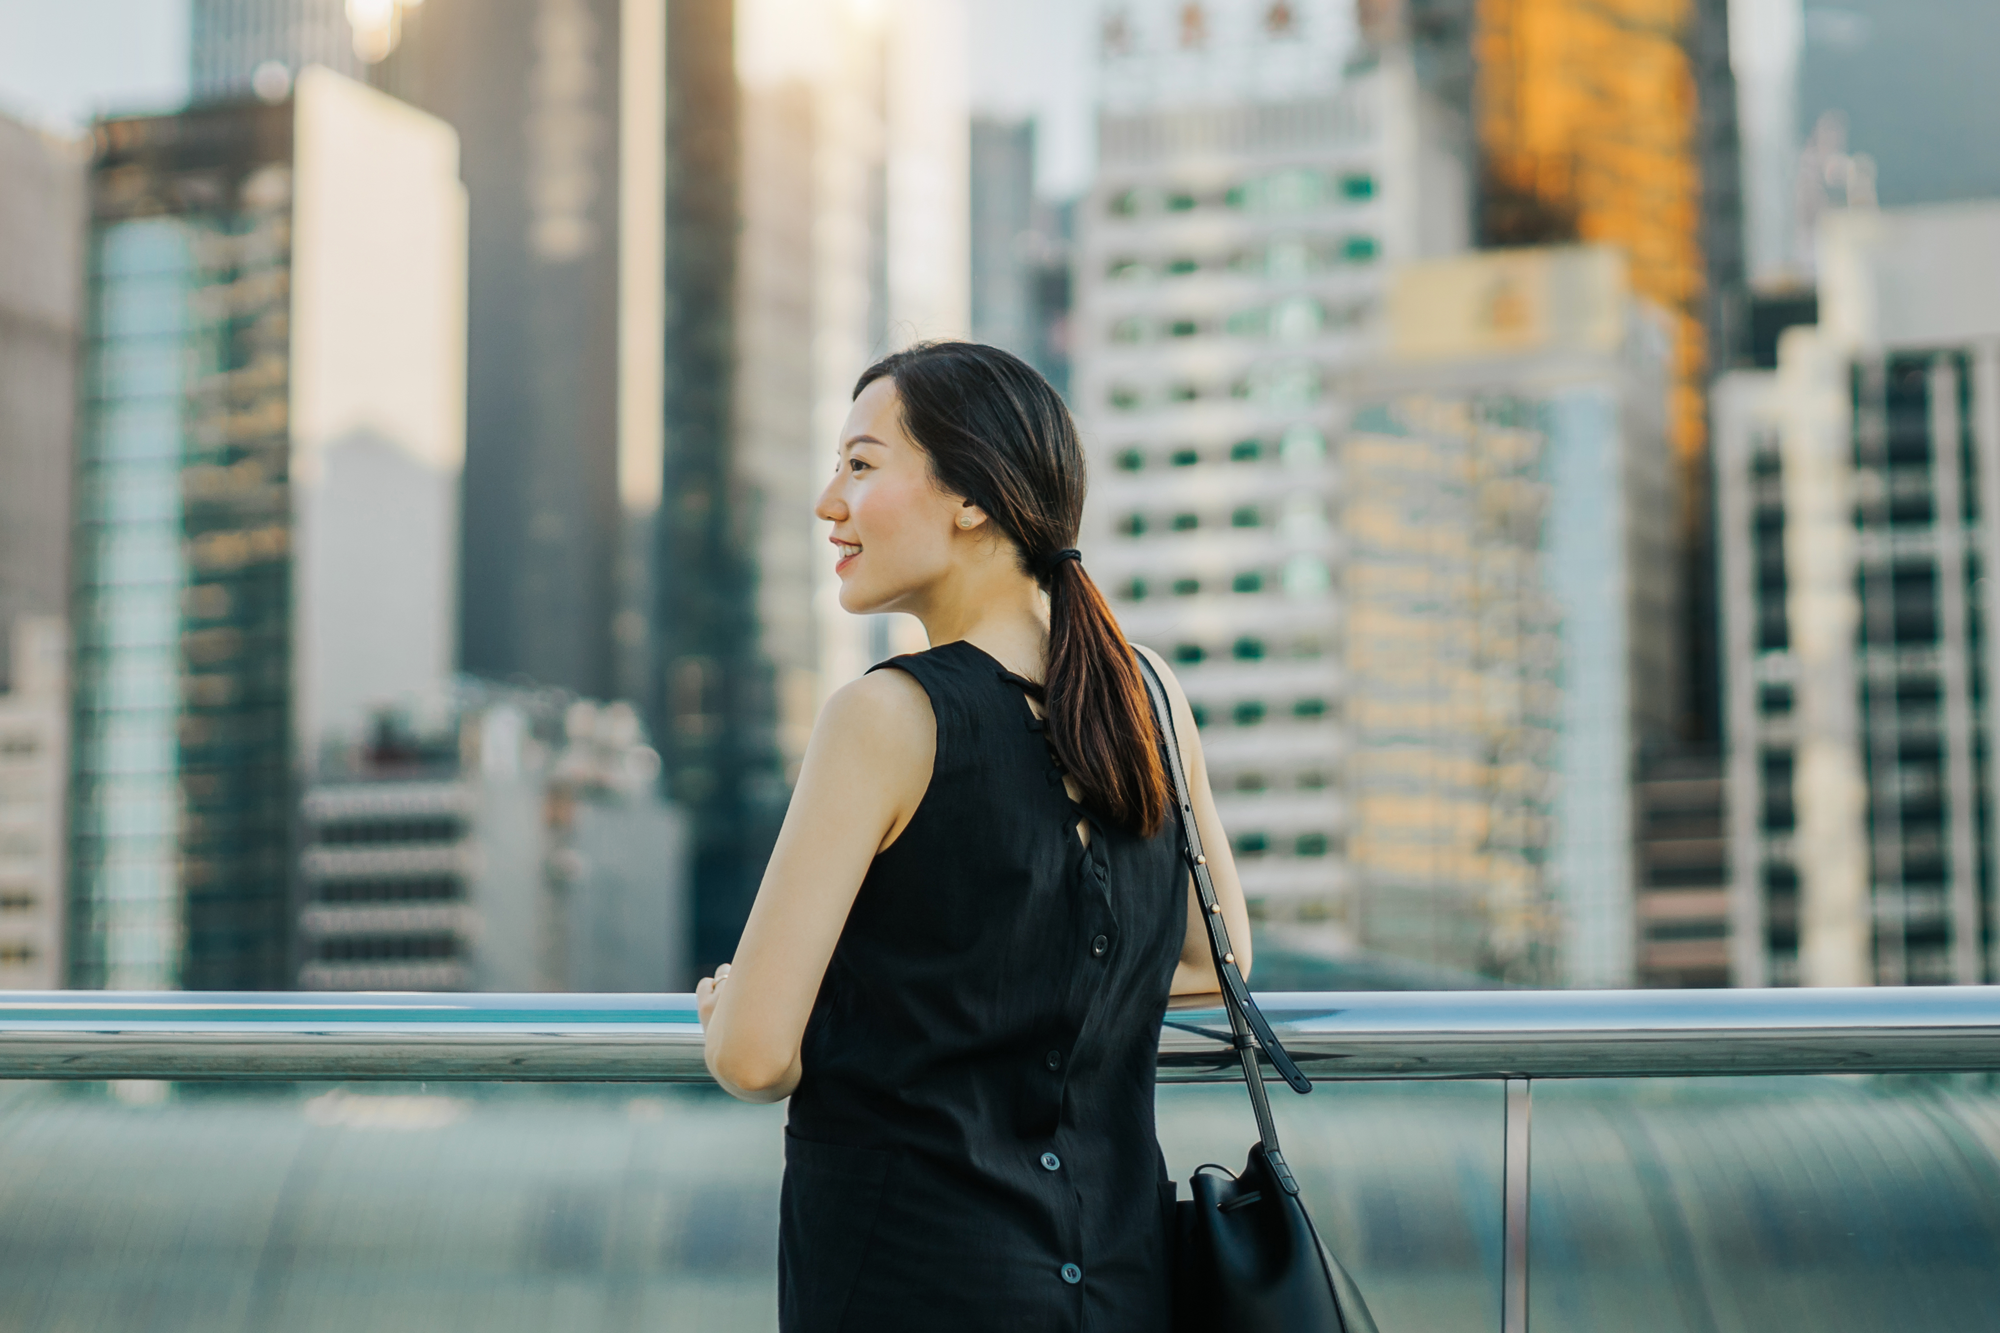 Young Asian woman enjoying the city view during sunset on urban balcony